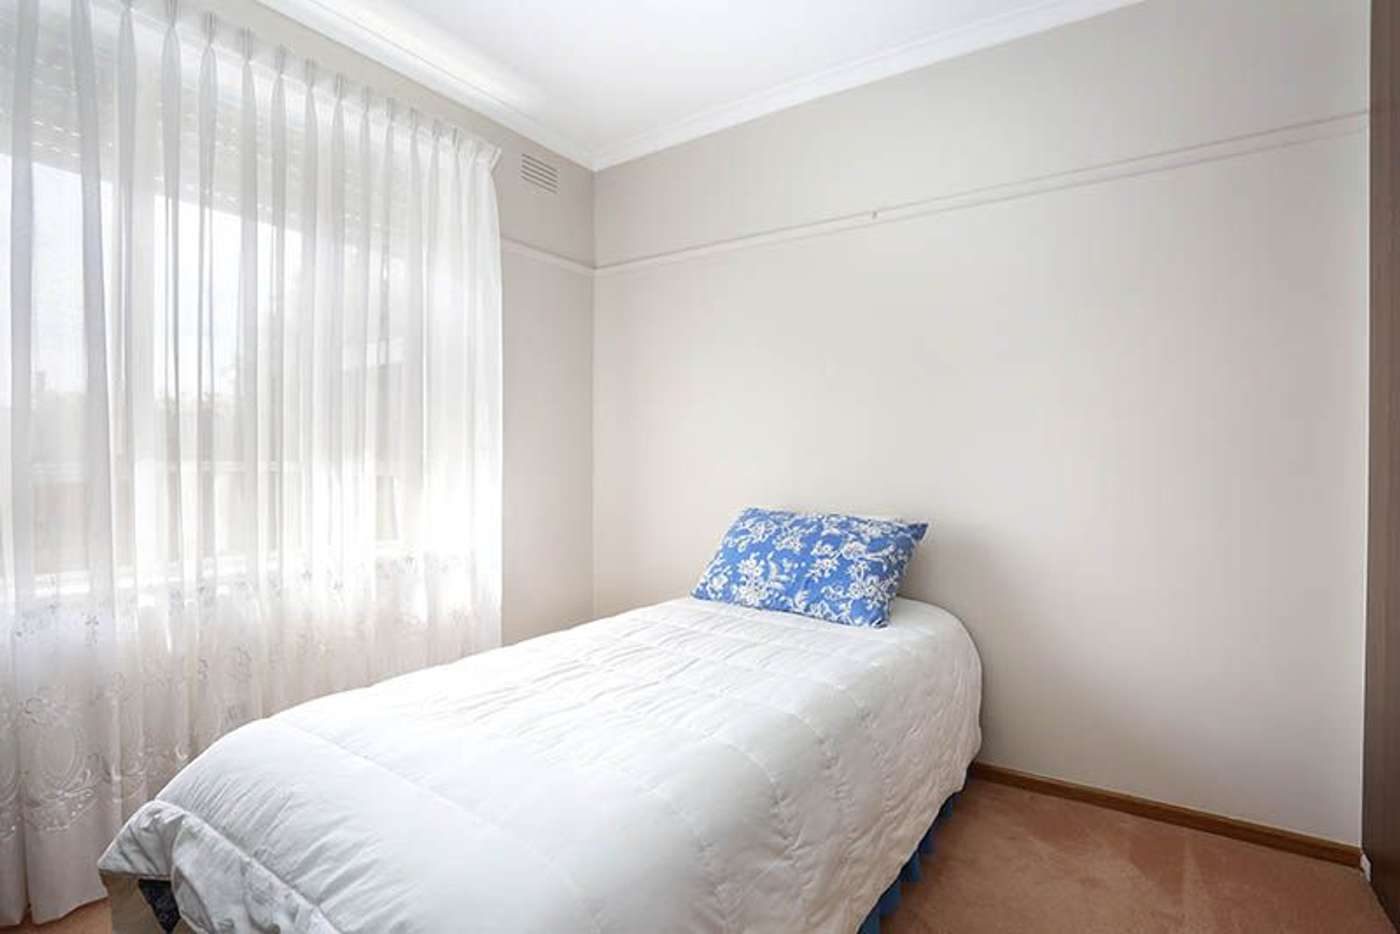 Seventh view of Homely house listing, 40 Higinbotham Street, Coburg VIC 3058